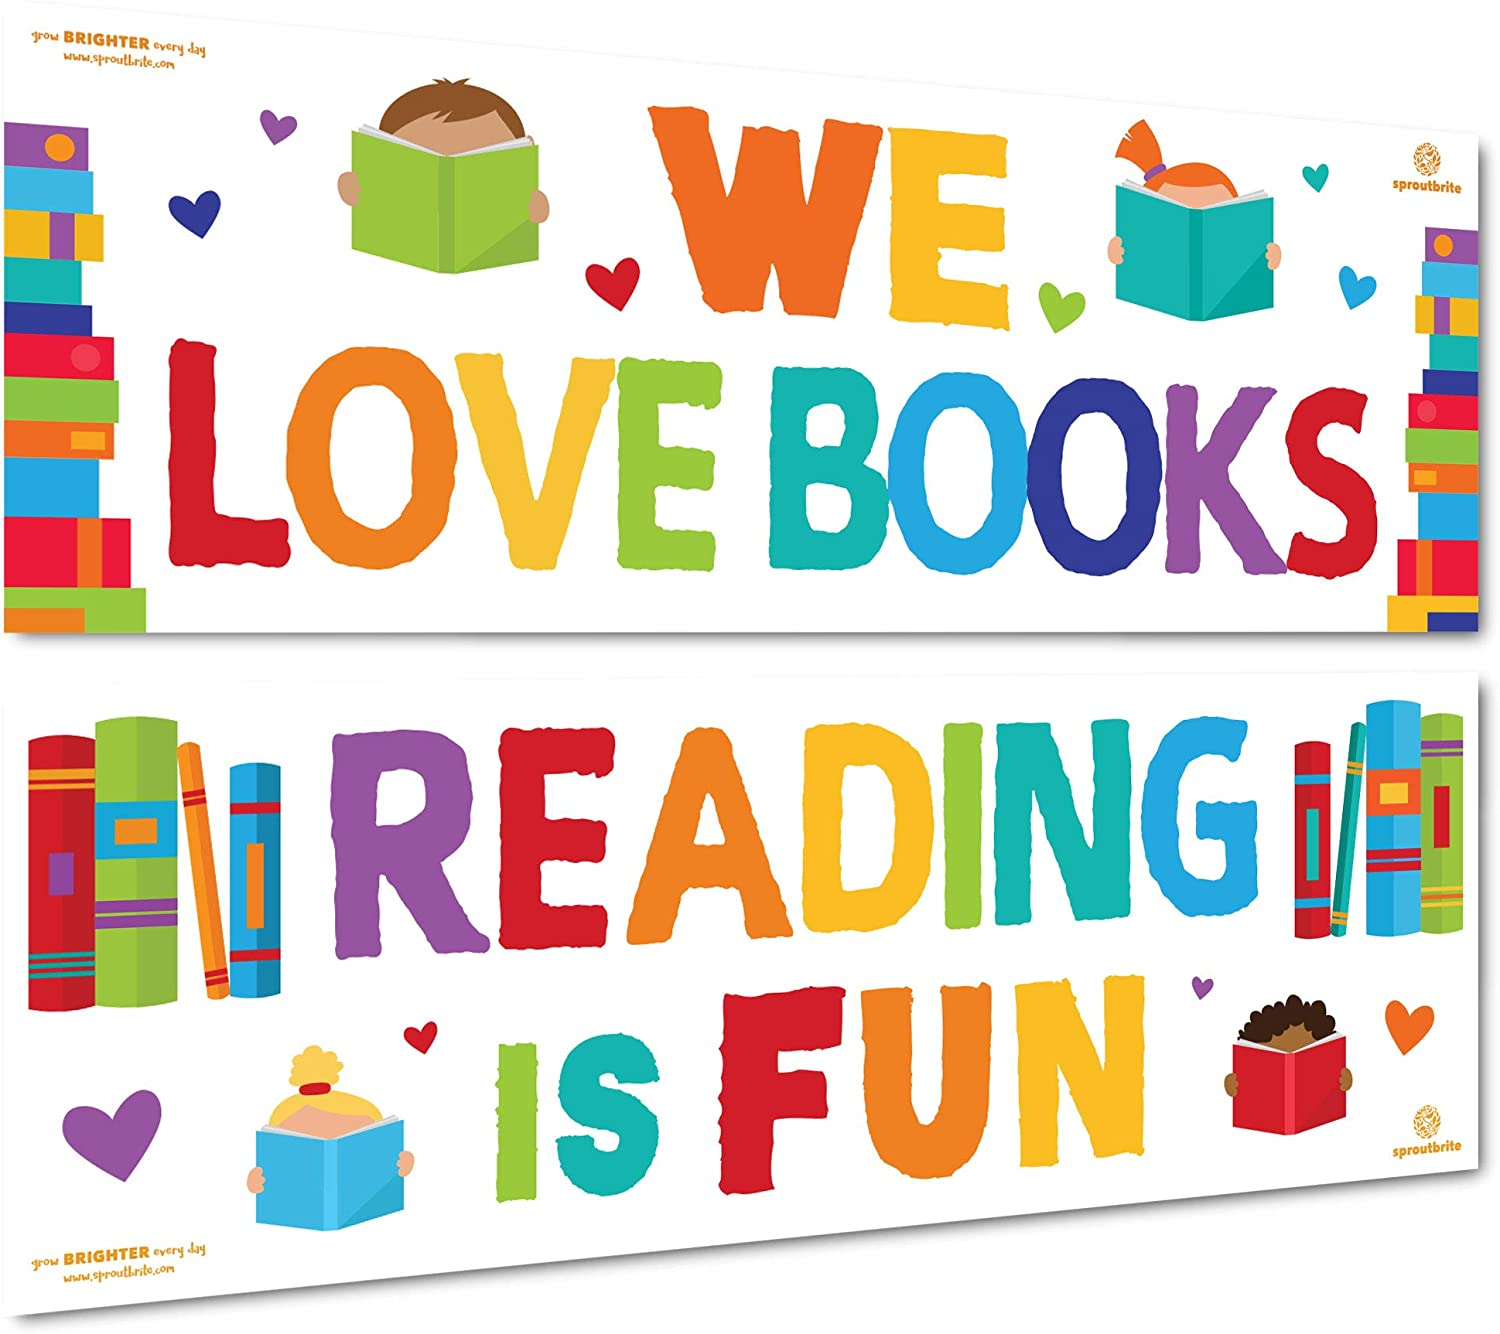 Sproutbrite Classroom Decorations - Reading Banner and Poster for Teachers - Bulletin Board and Wall Decor for Pre School, Elementary and Middle School